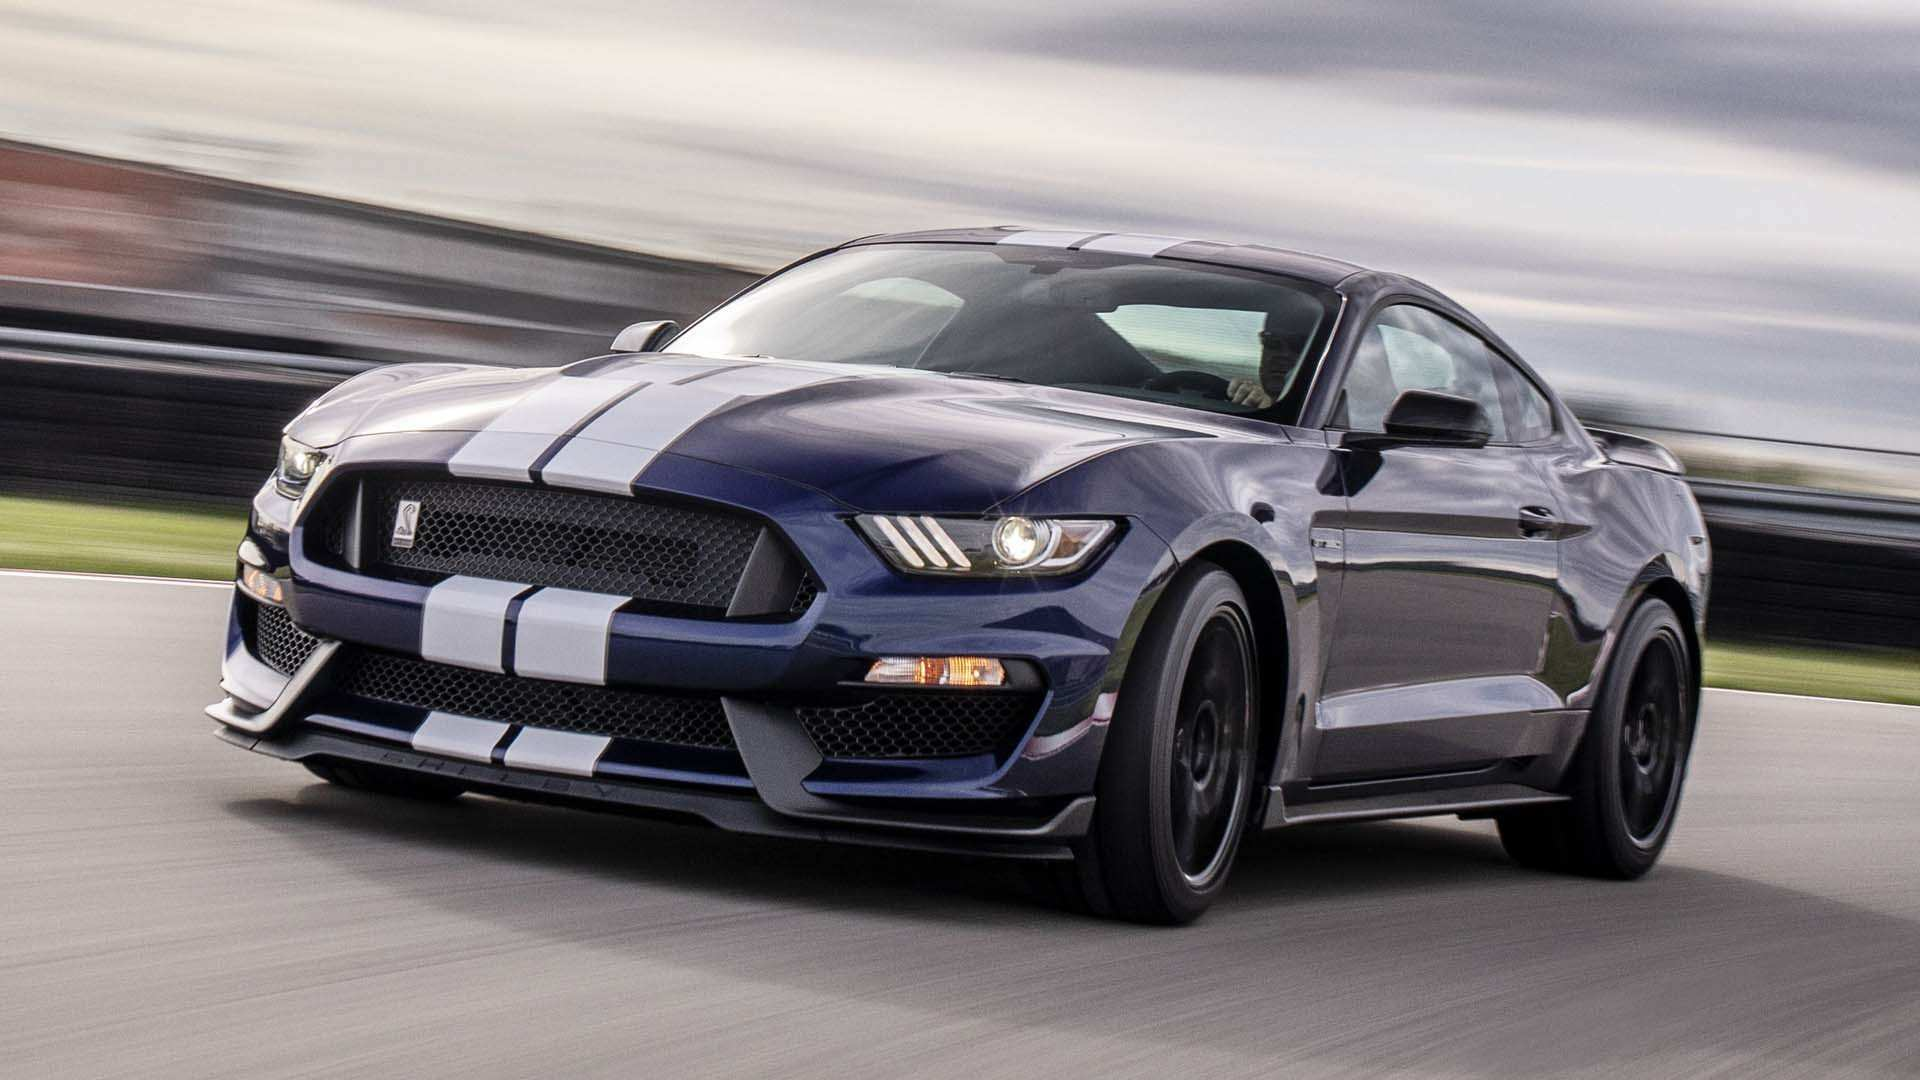 11 New 2020 Ford Mustang Shelby Gt 350 Photos by 2020 Ford Mustang Shelby Gt 350